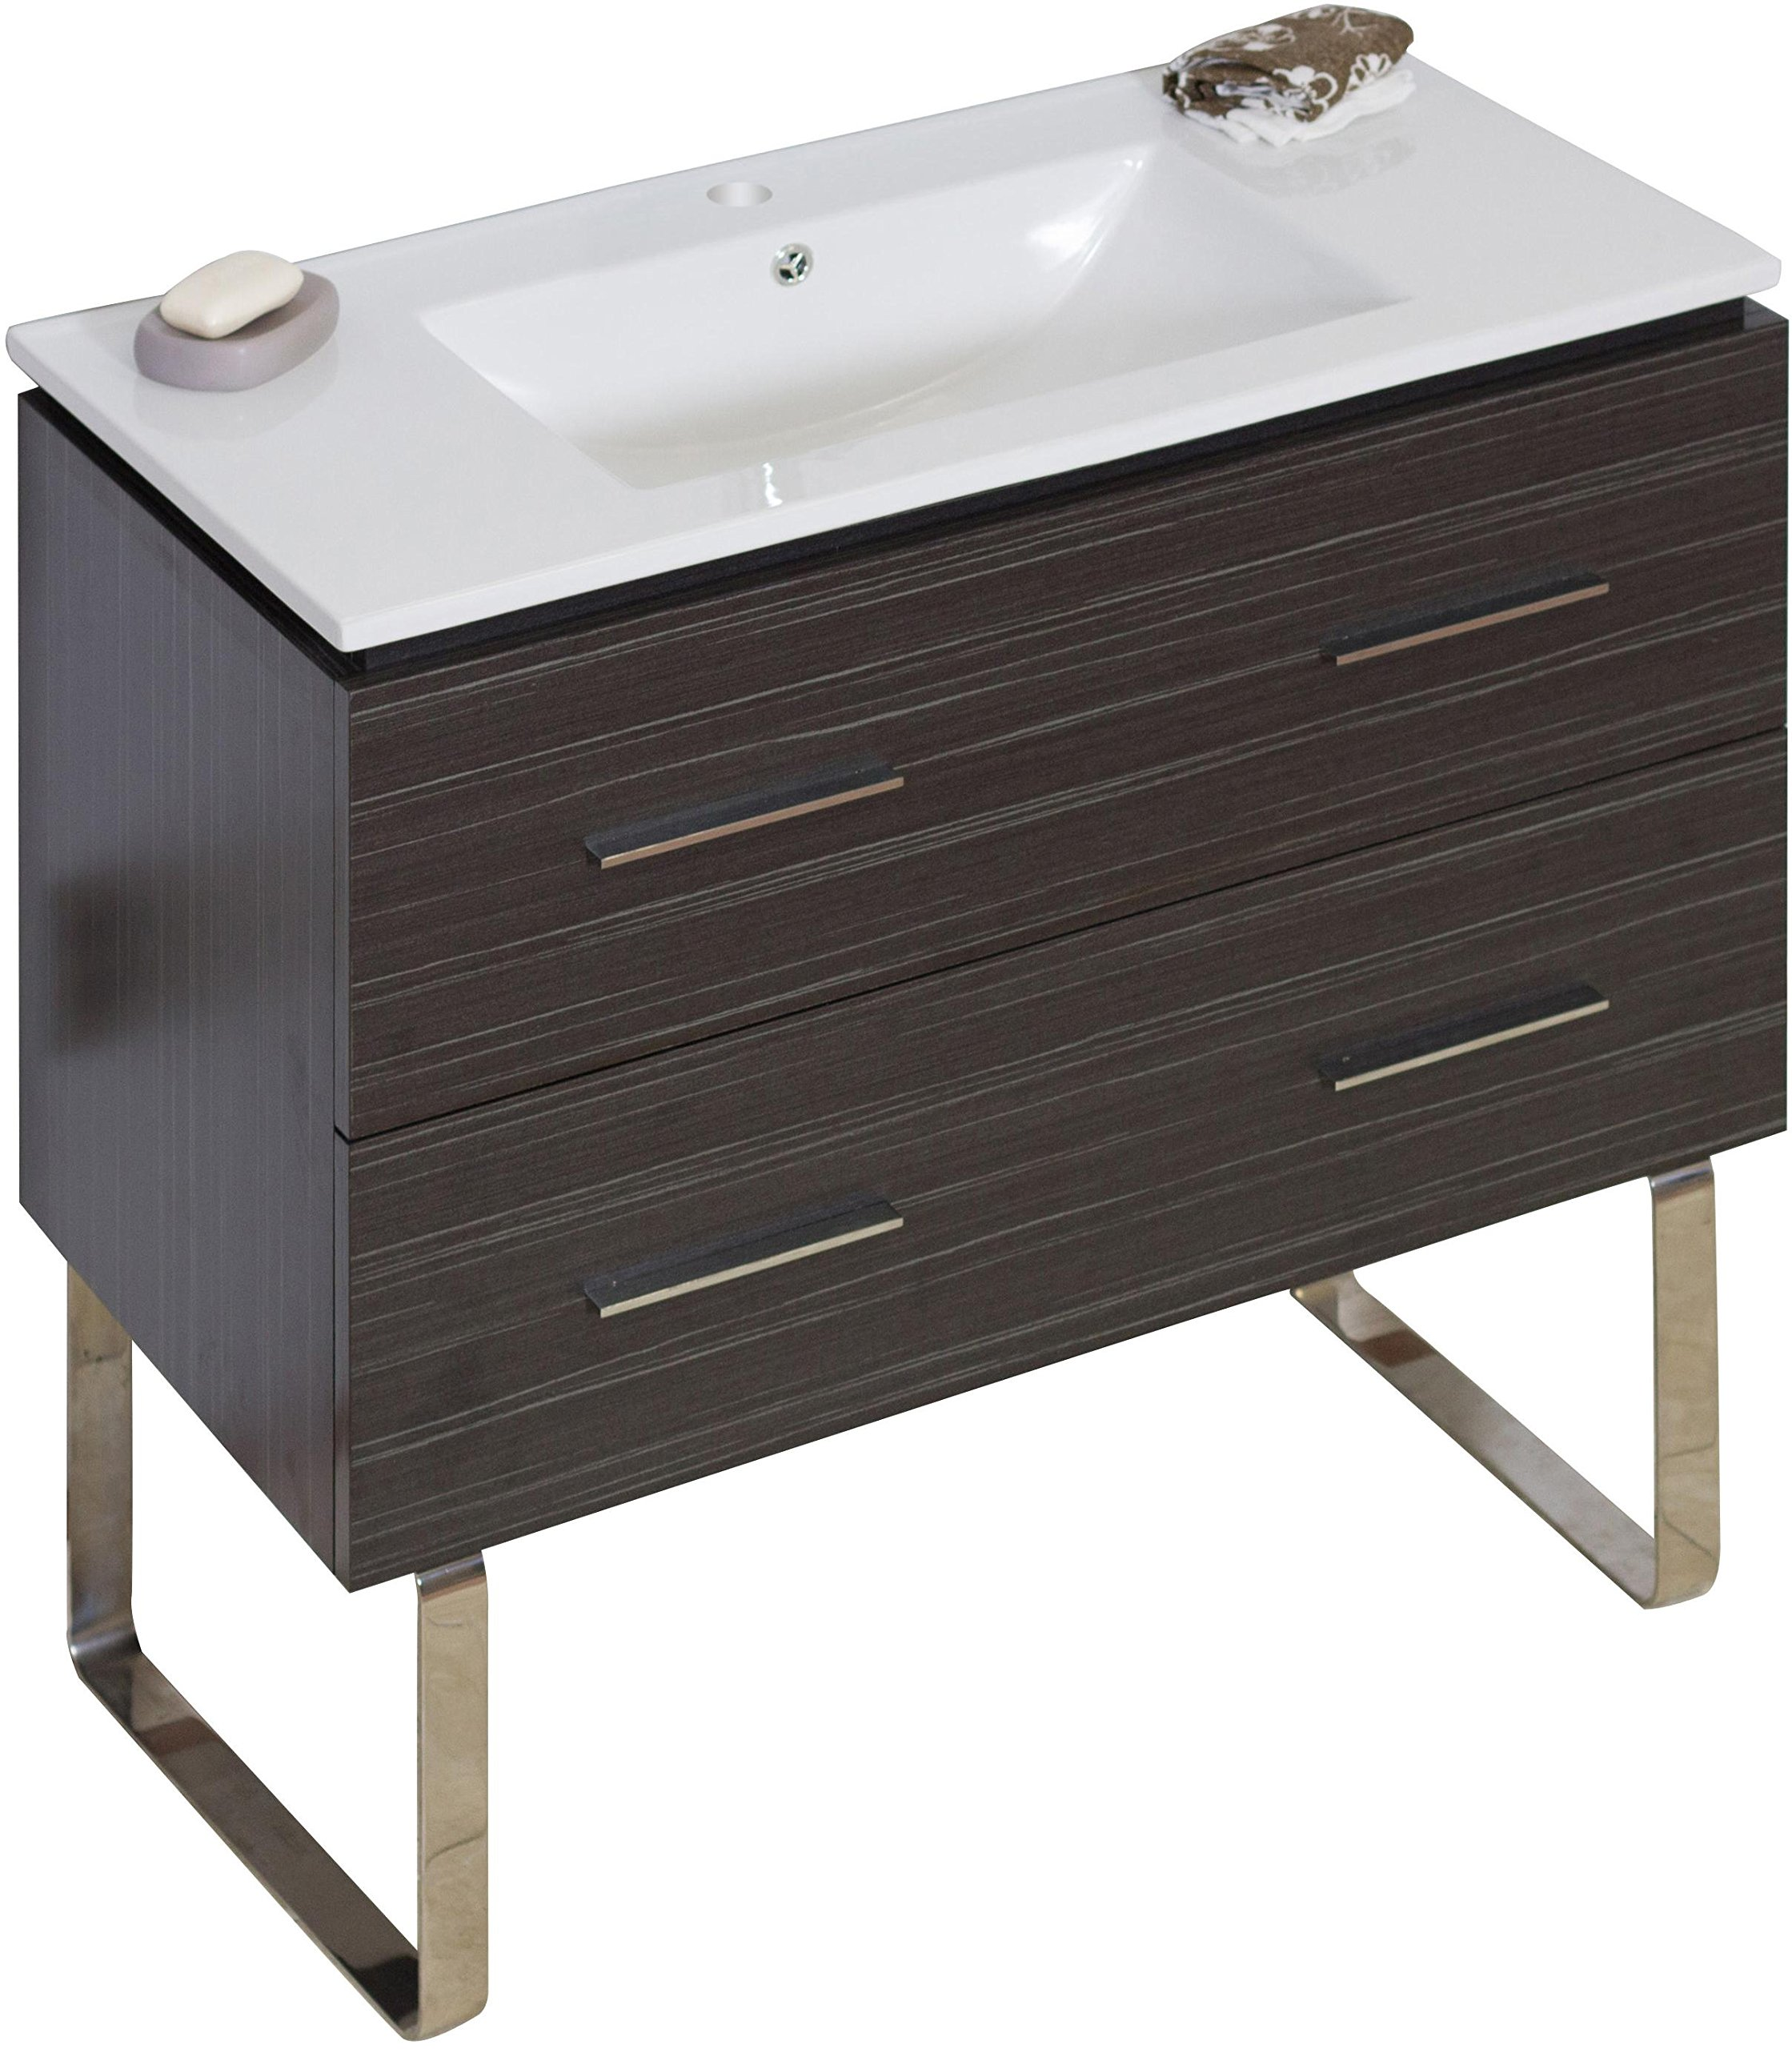 American Imaginations 735   36-Inch W X 18-Inch D Solid Plywood Vanity with White Ceramic Top for Single Hole Faucet